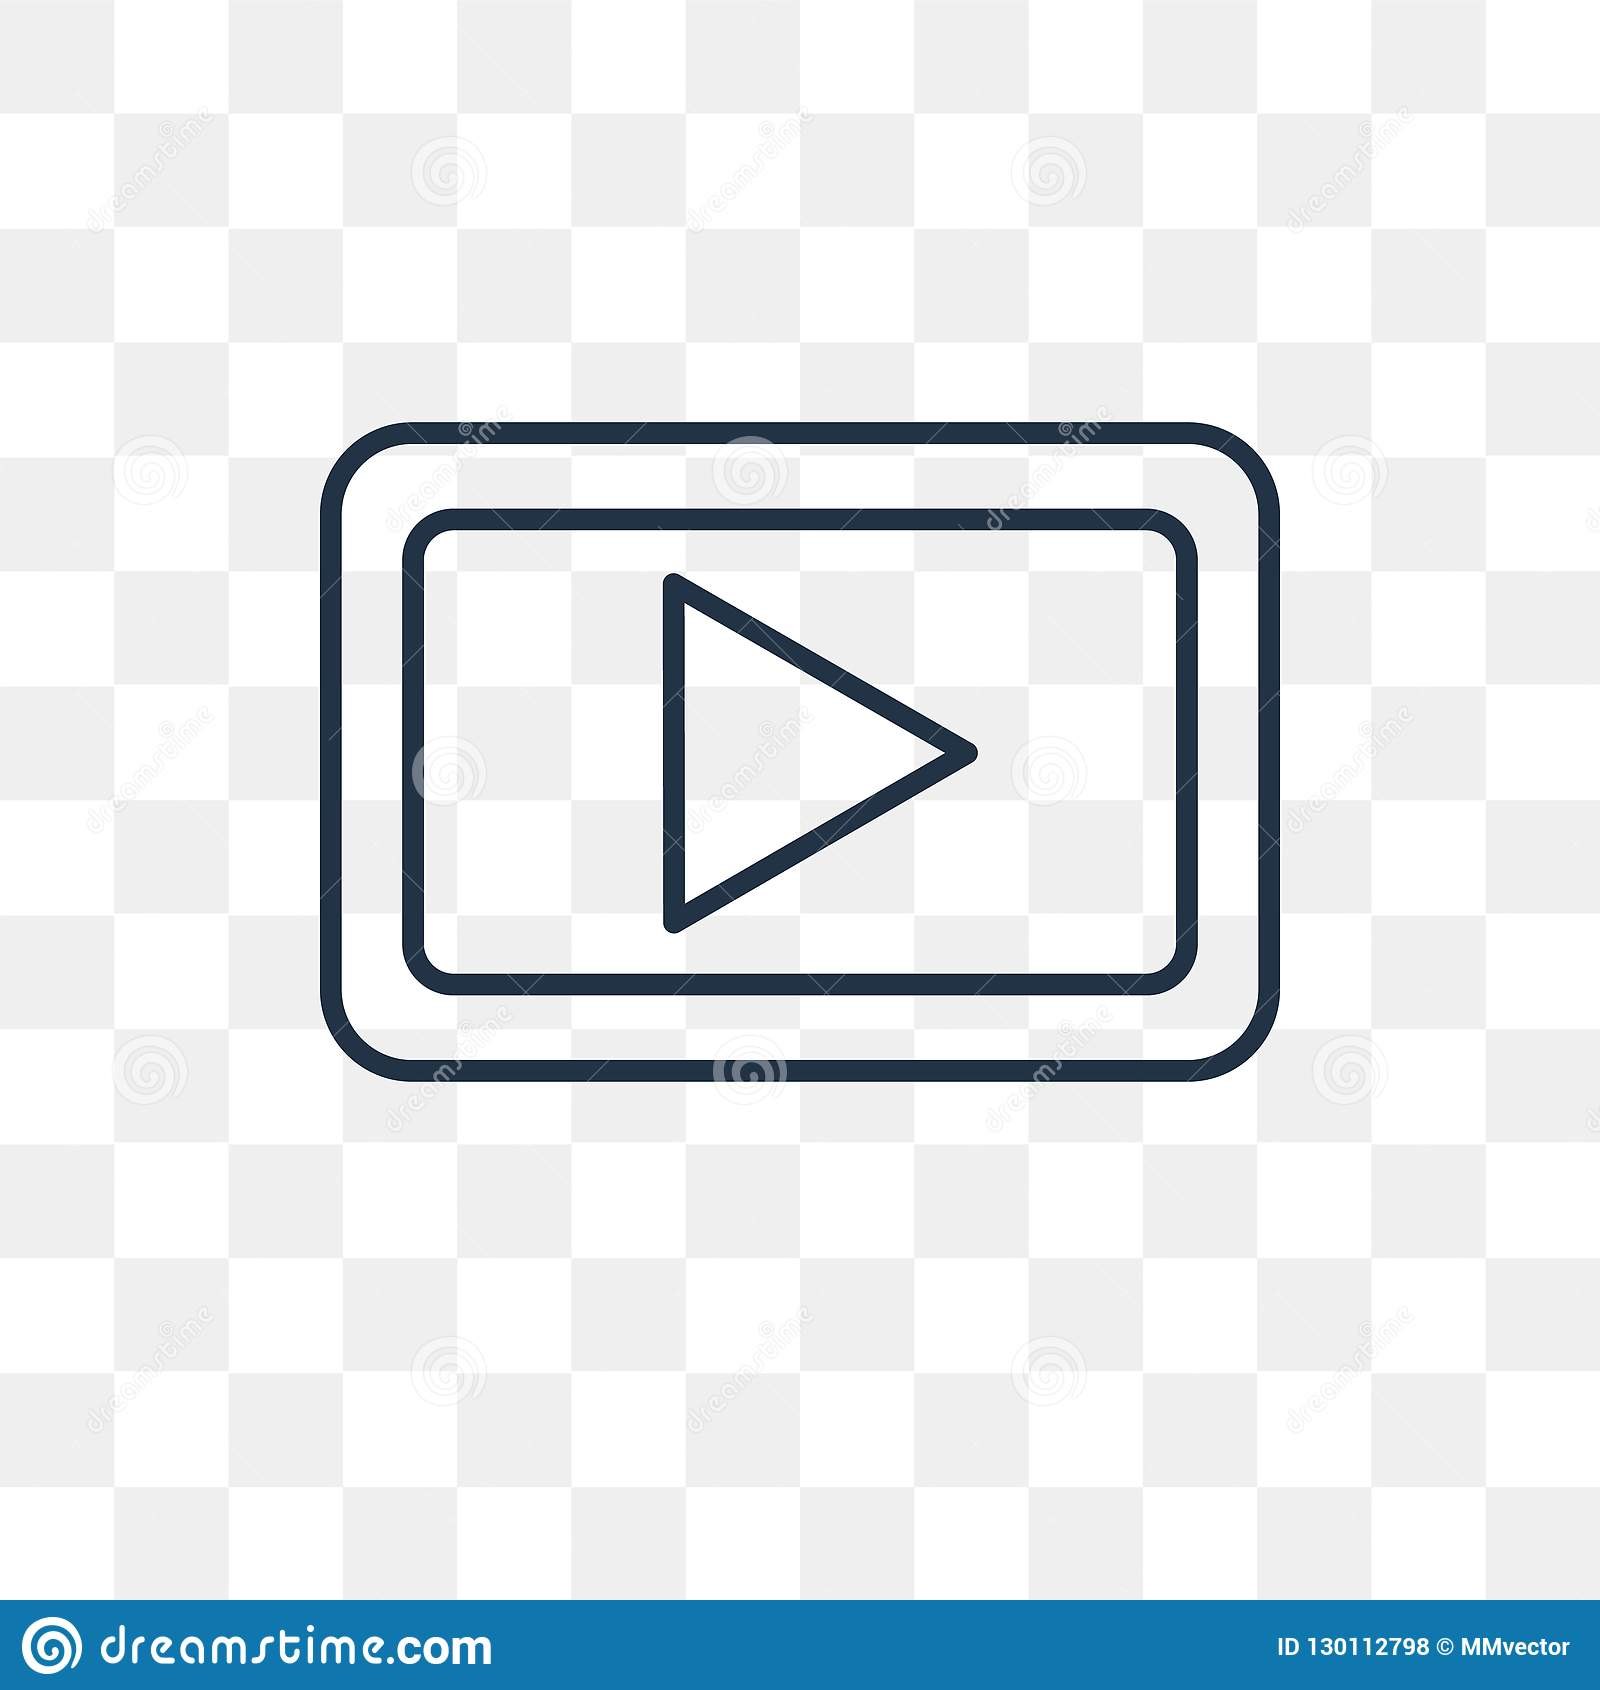 Play button vector icon isolated on transparent background, line